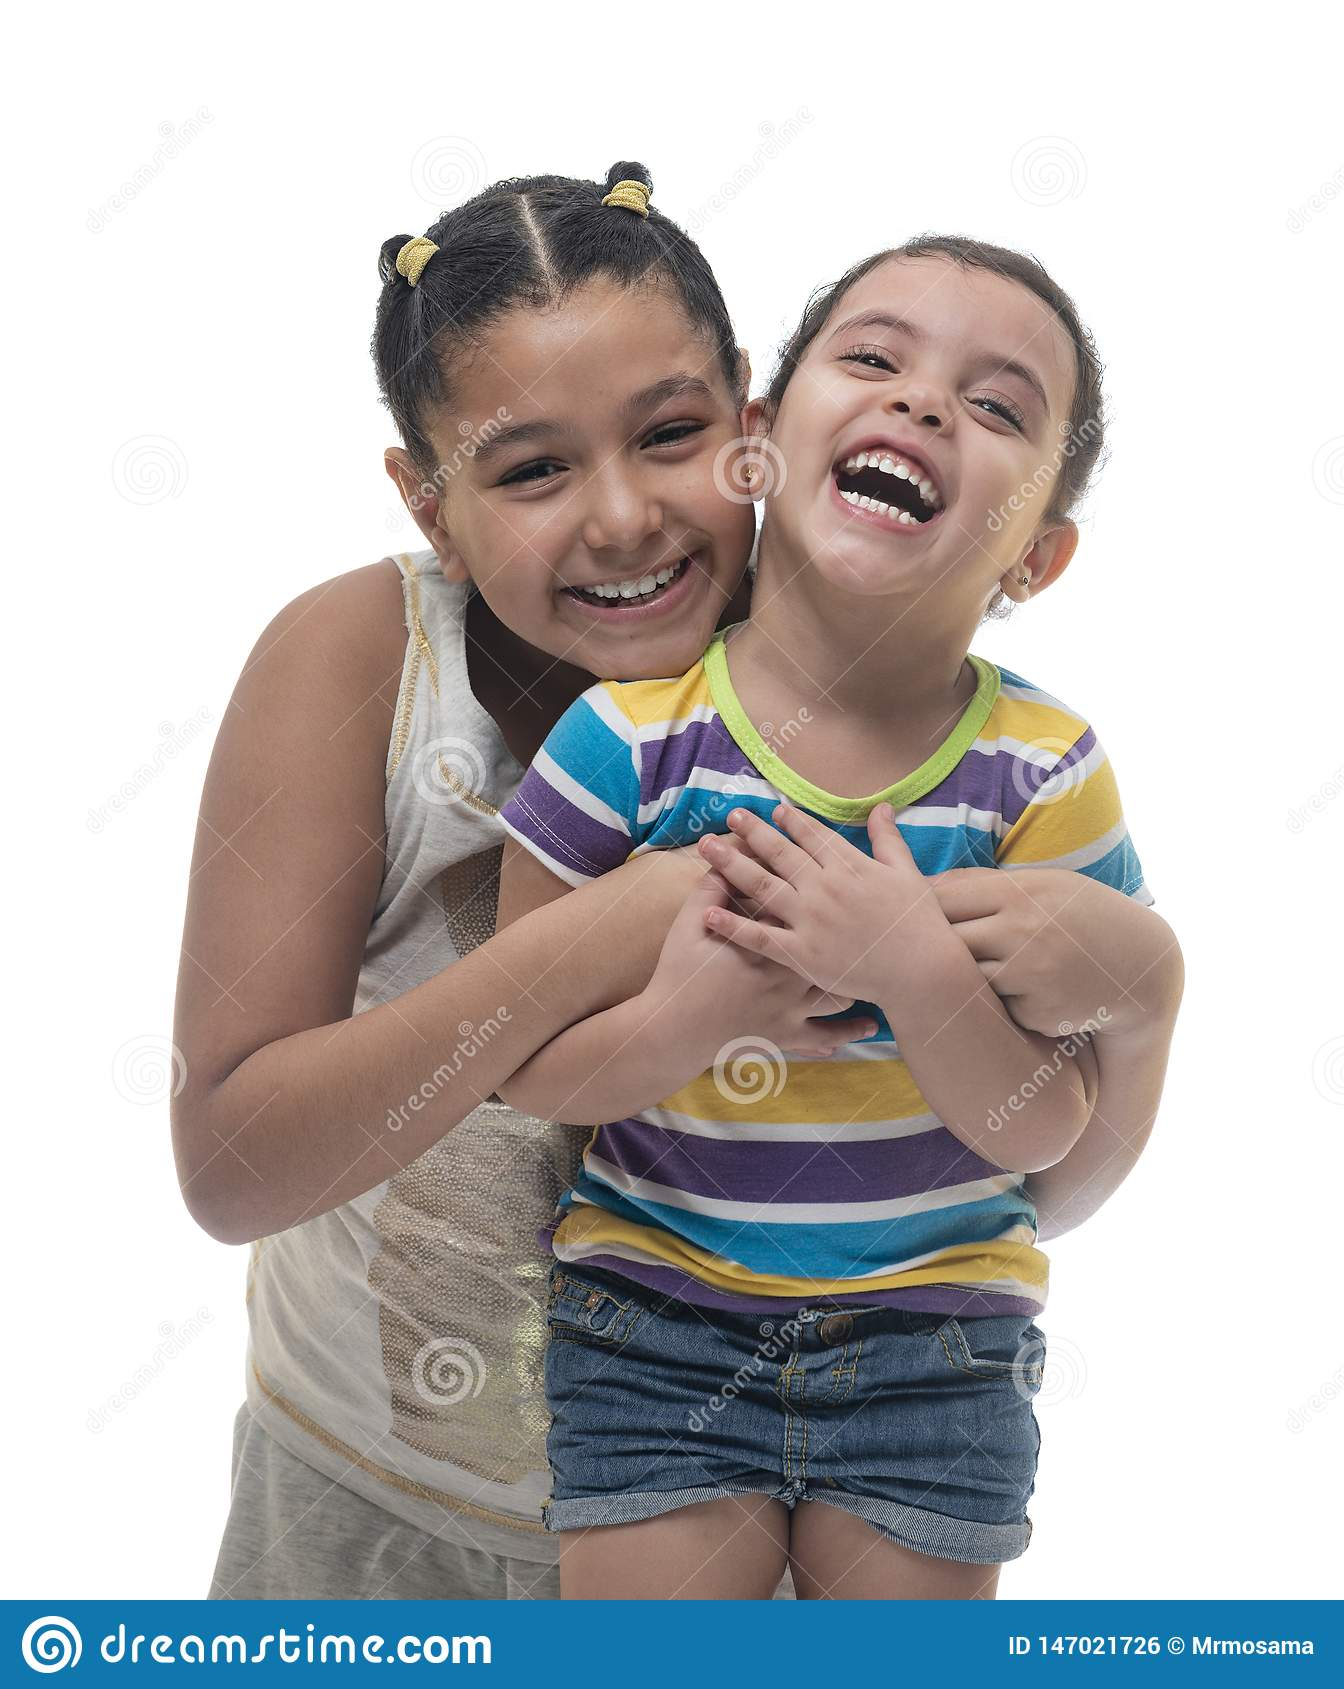 Two Happy Sisters, Older and Younger, with a Laugh Full of Joy on White